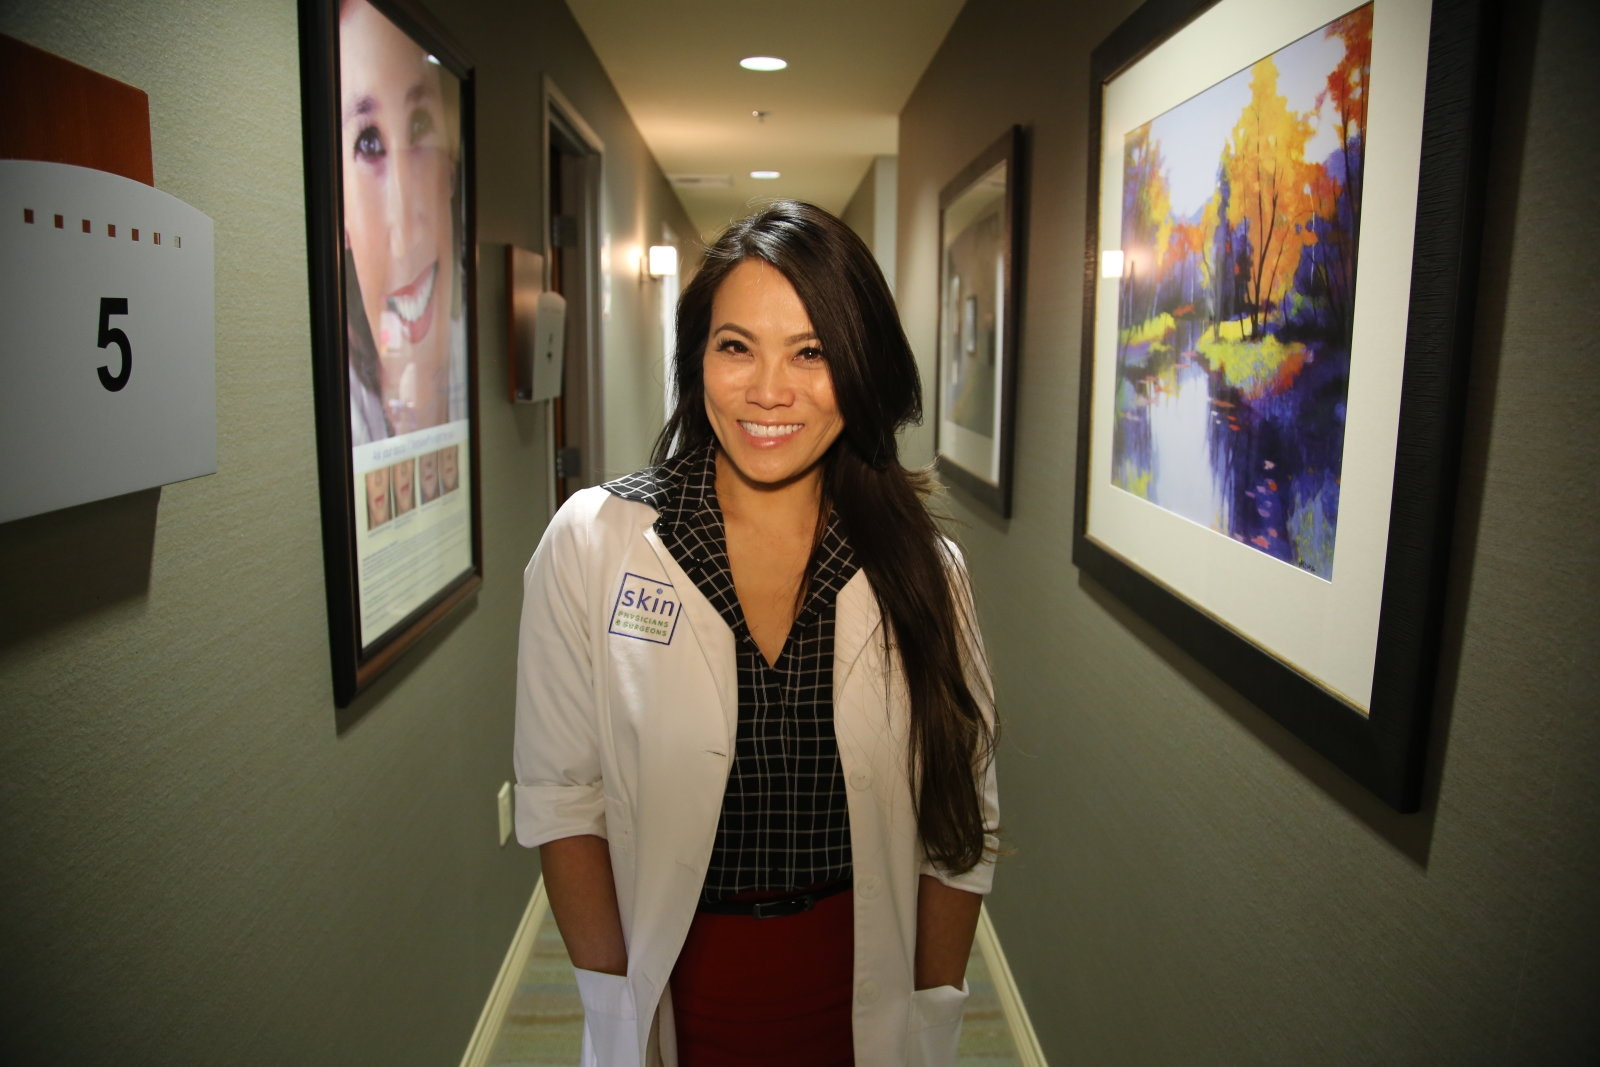 Dr. Pimple Popper parlays her gross Instagram videos into a TV deal | DeviceDaily.com